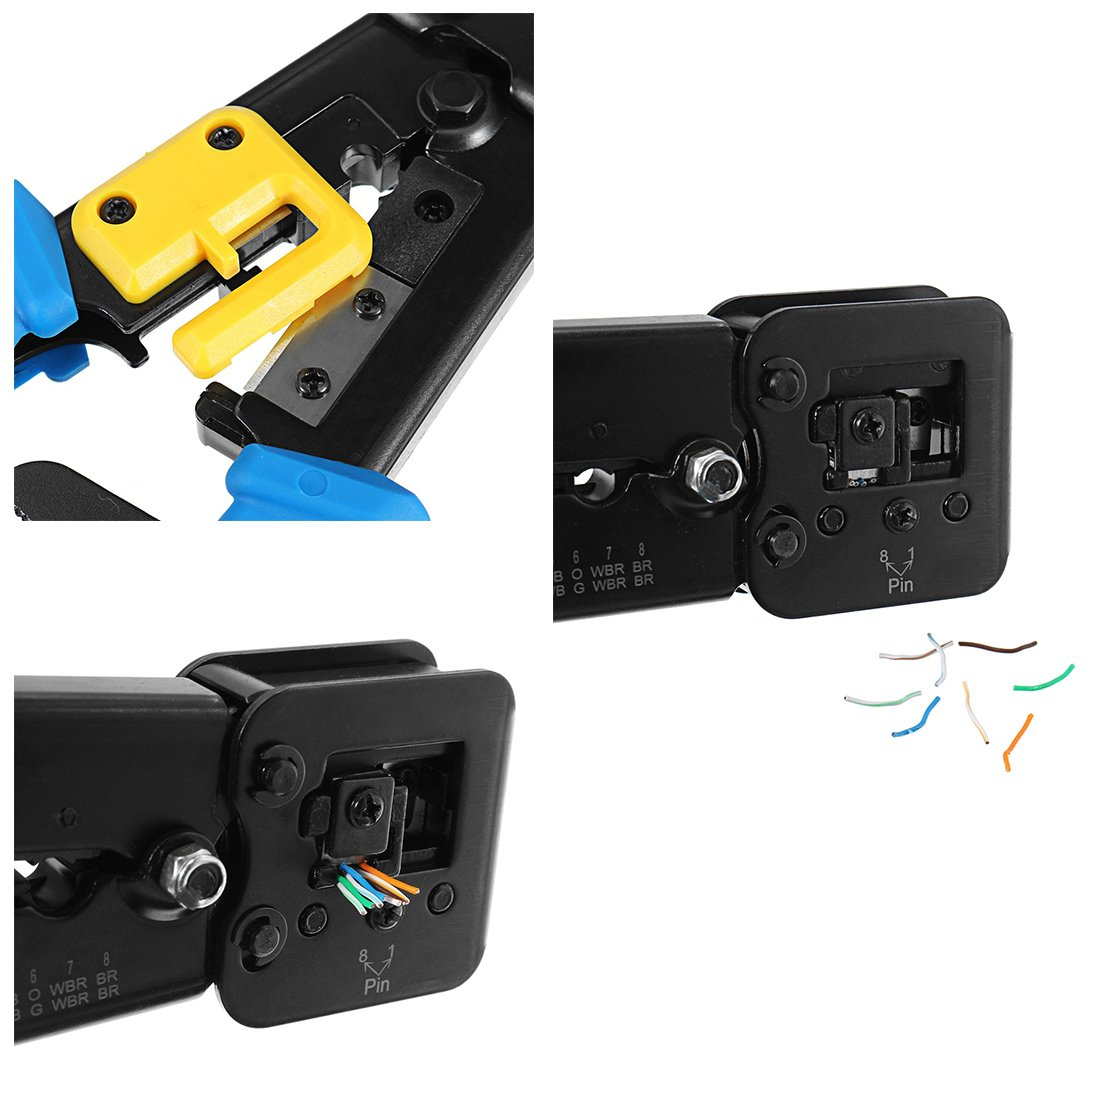 Rj45 Crimp Tool 6p 8p Multi Function Cable Cutter Pass Through Network Wiring Crimper Ethernet Connector